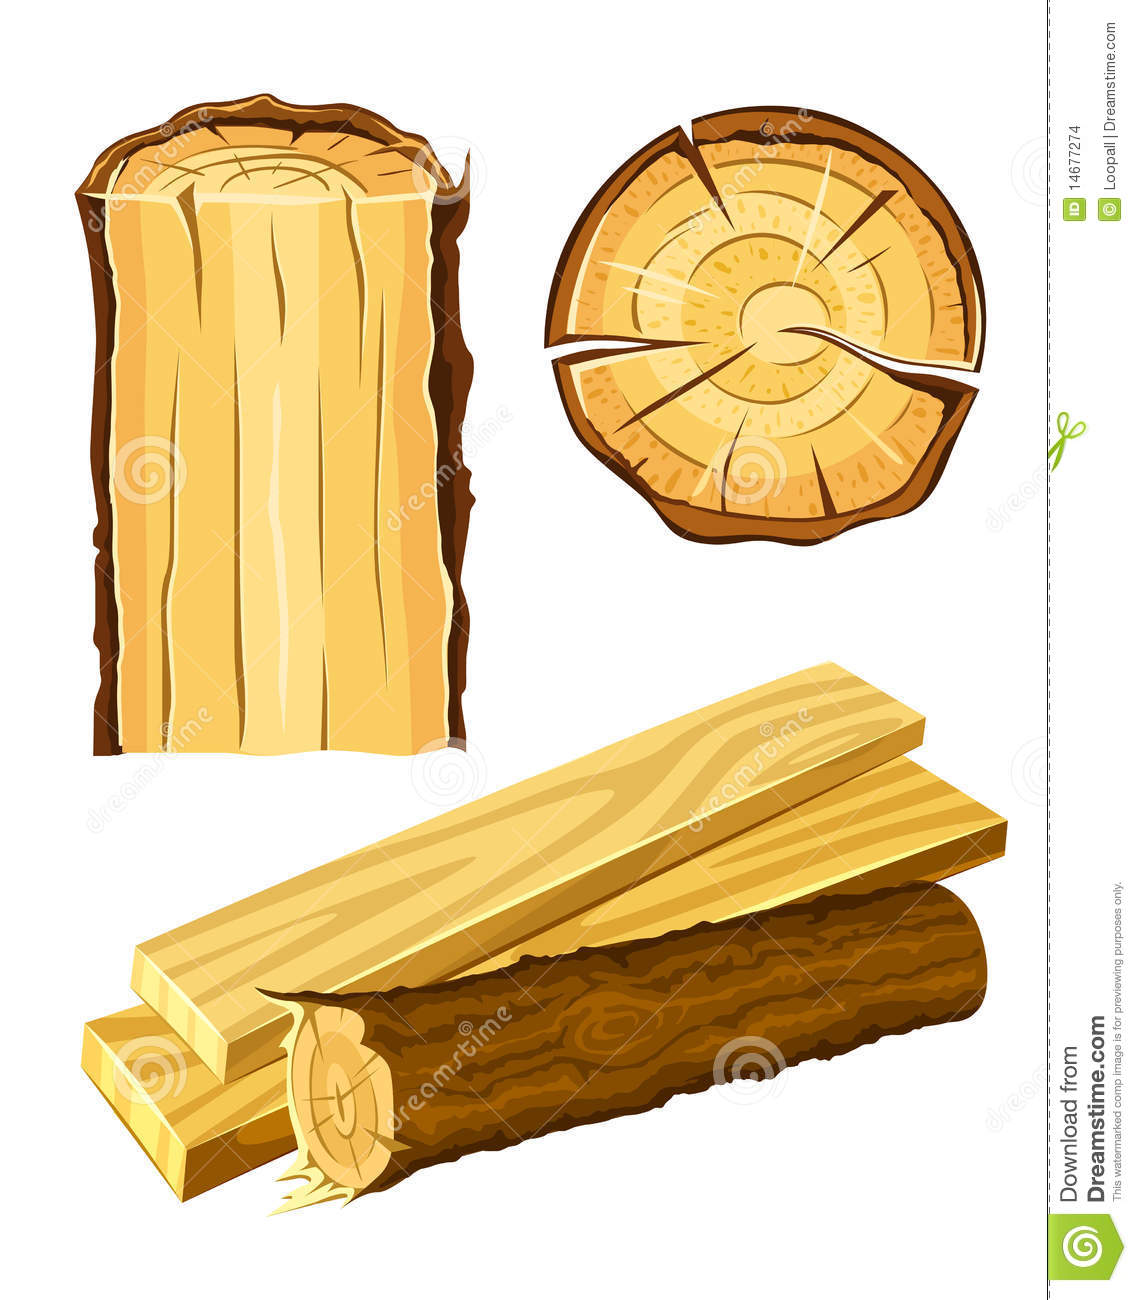 Wooden material wood and board stock illustration image